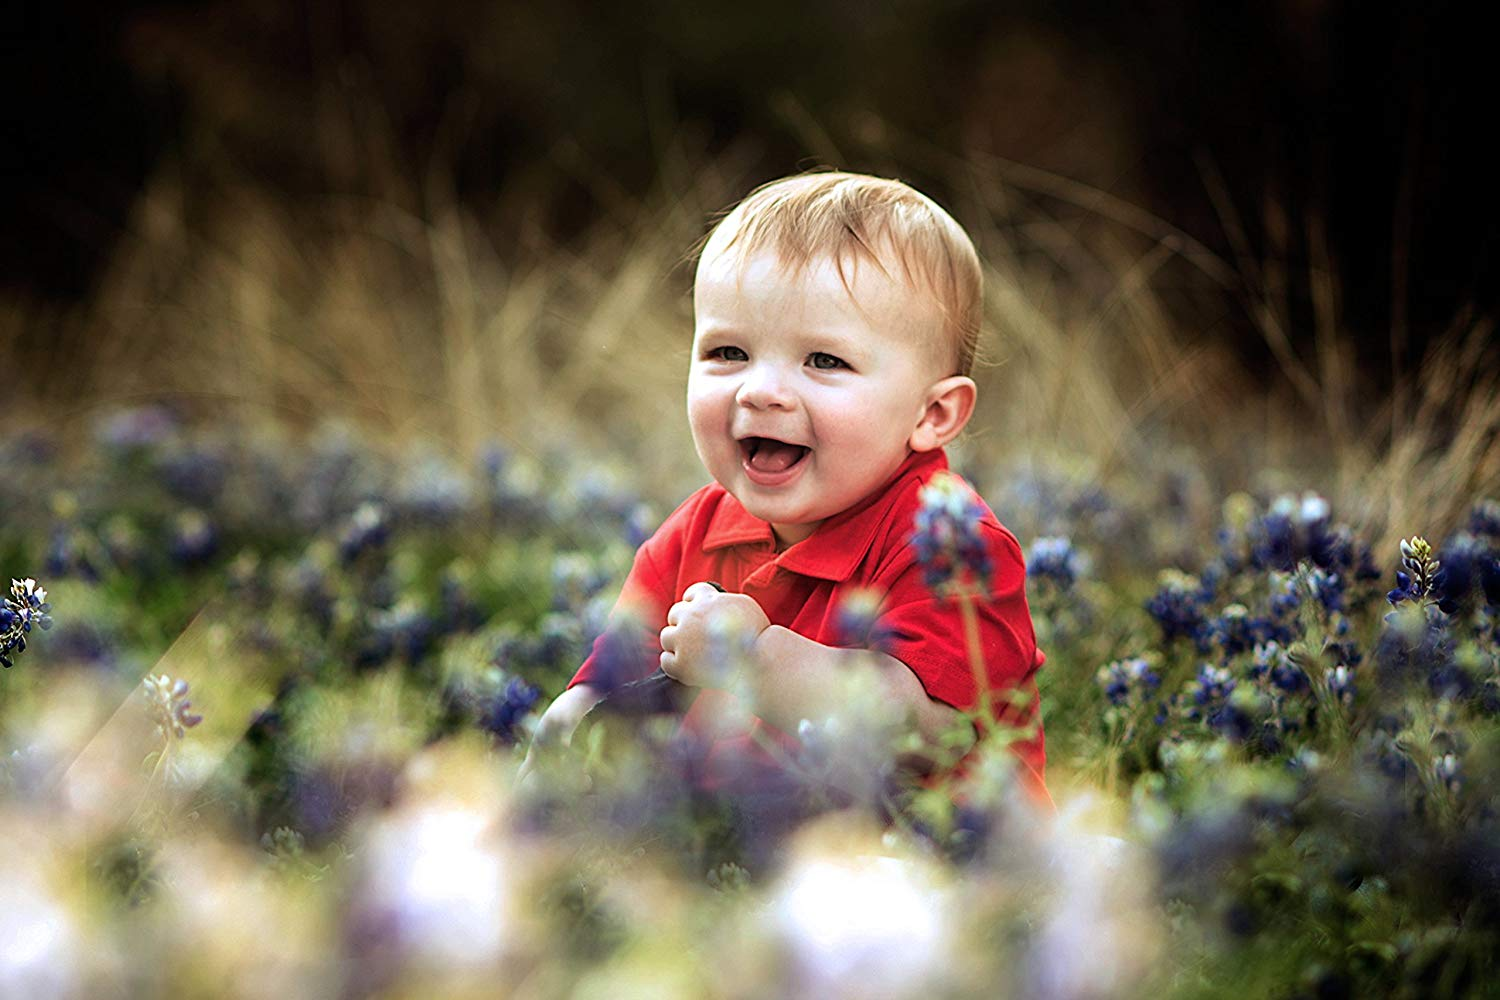 Cute Baby Photos With Smile